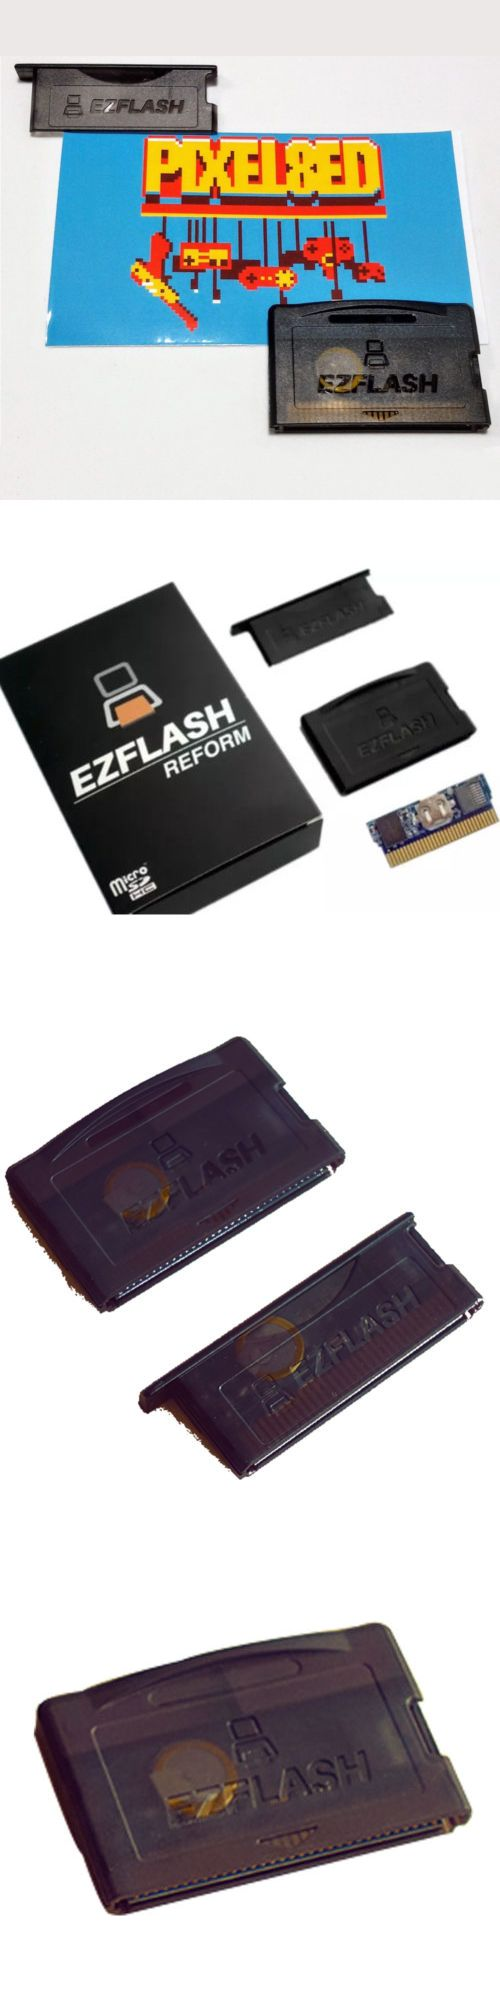 Other Video Game Accessories 49230: Ez Flash Omega - Gameboy